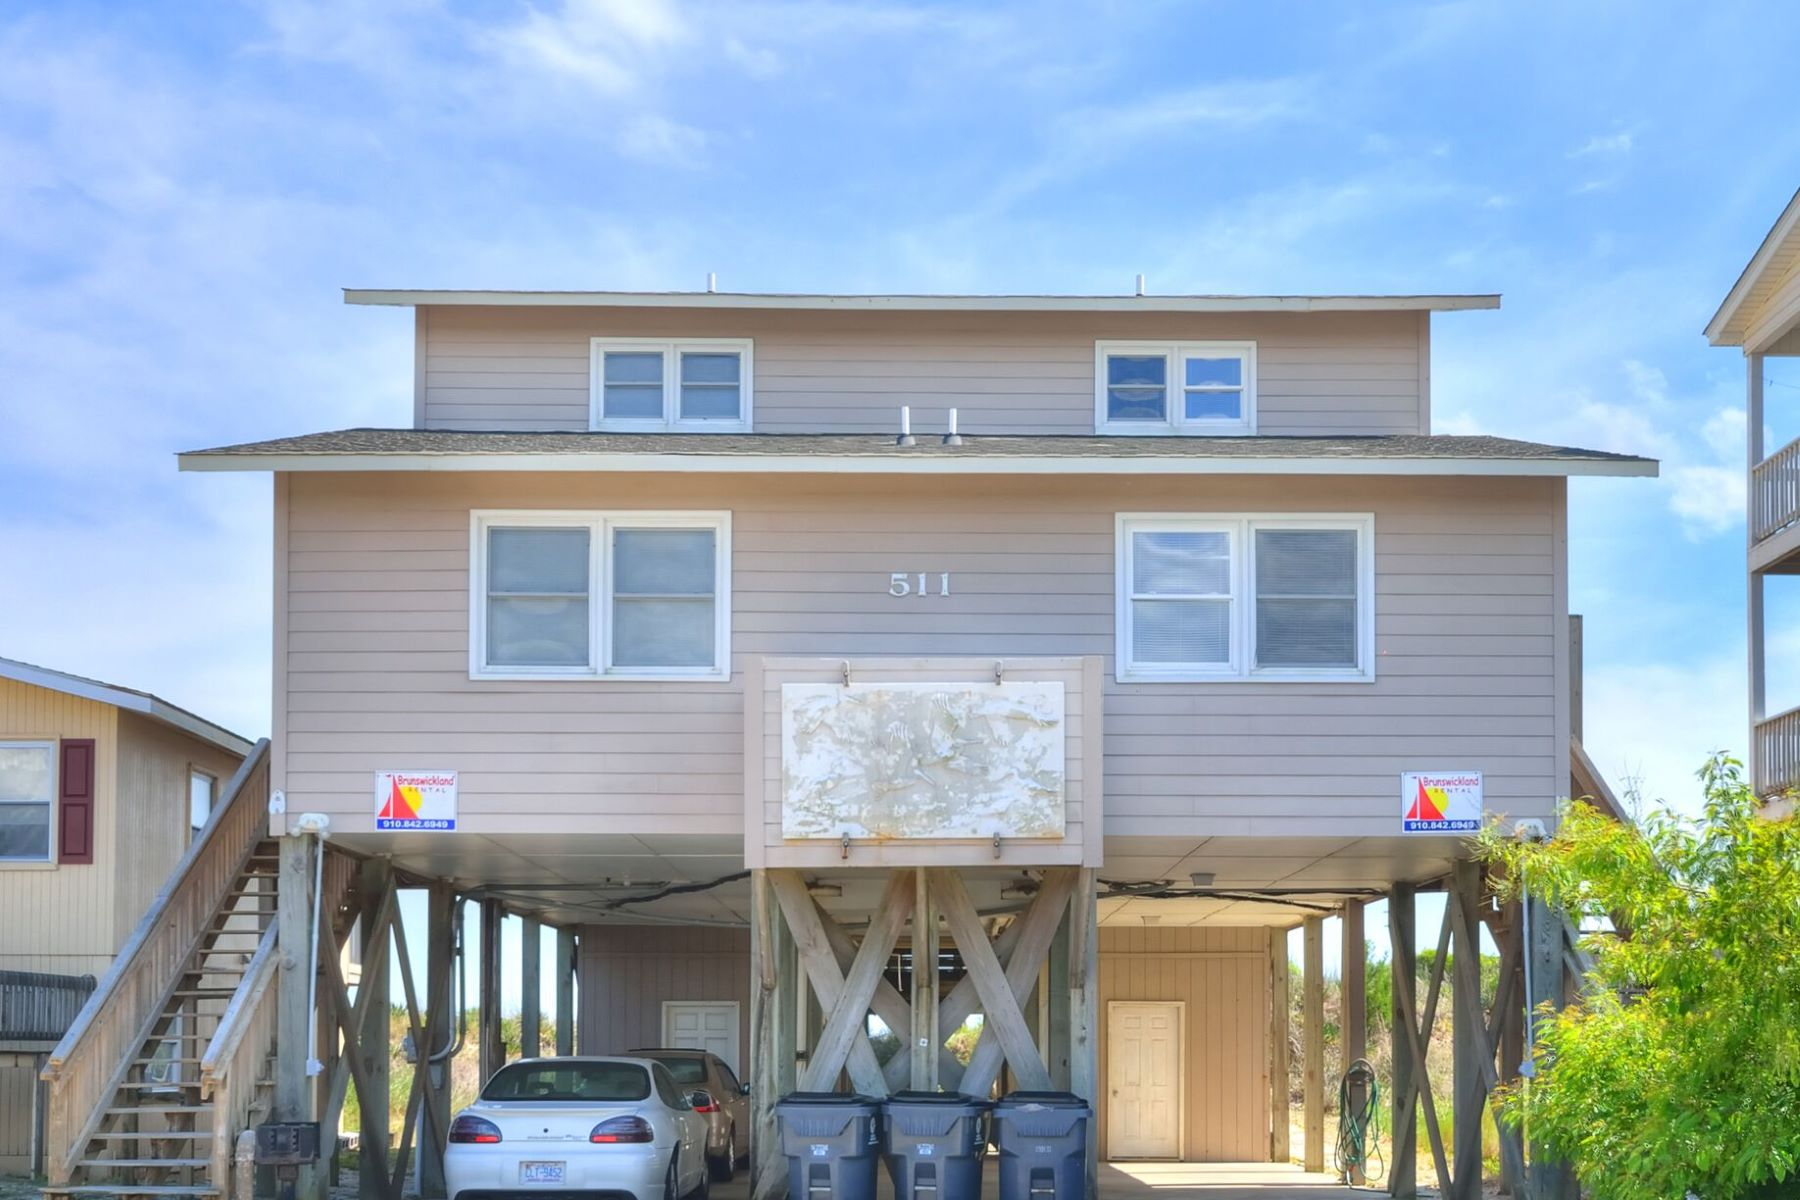 Casa Unifamiliar por un Venta en Inviting Oceanfront Retreat 511 Ocean Boulevard W Holden Beach, Carolina Del Norte, 28462 Estados Unidos